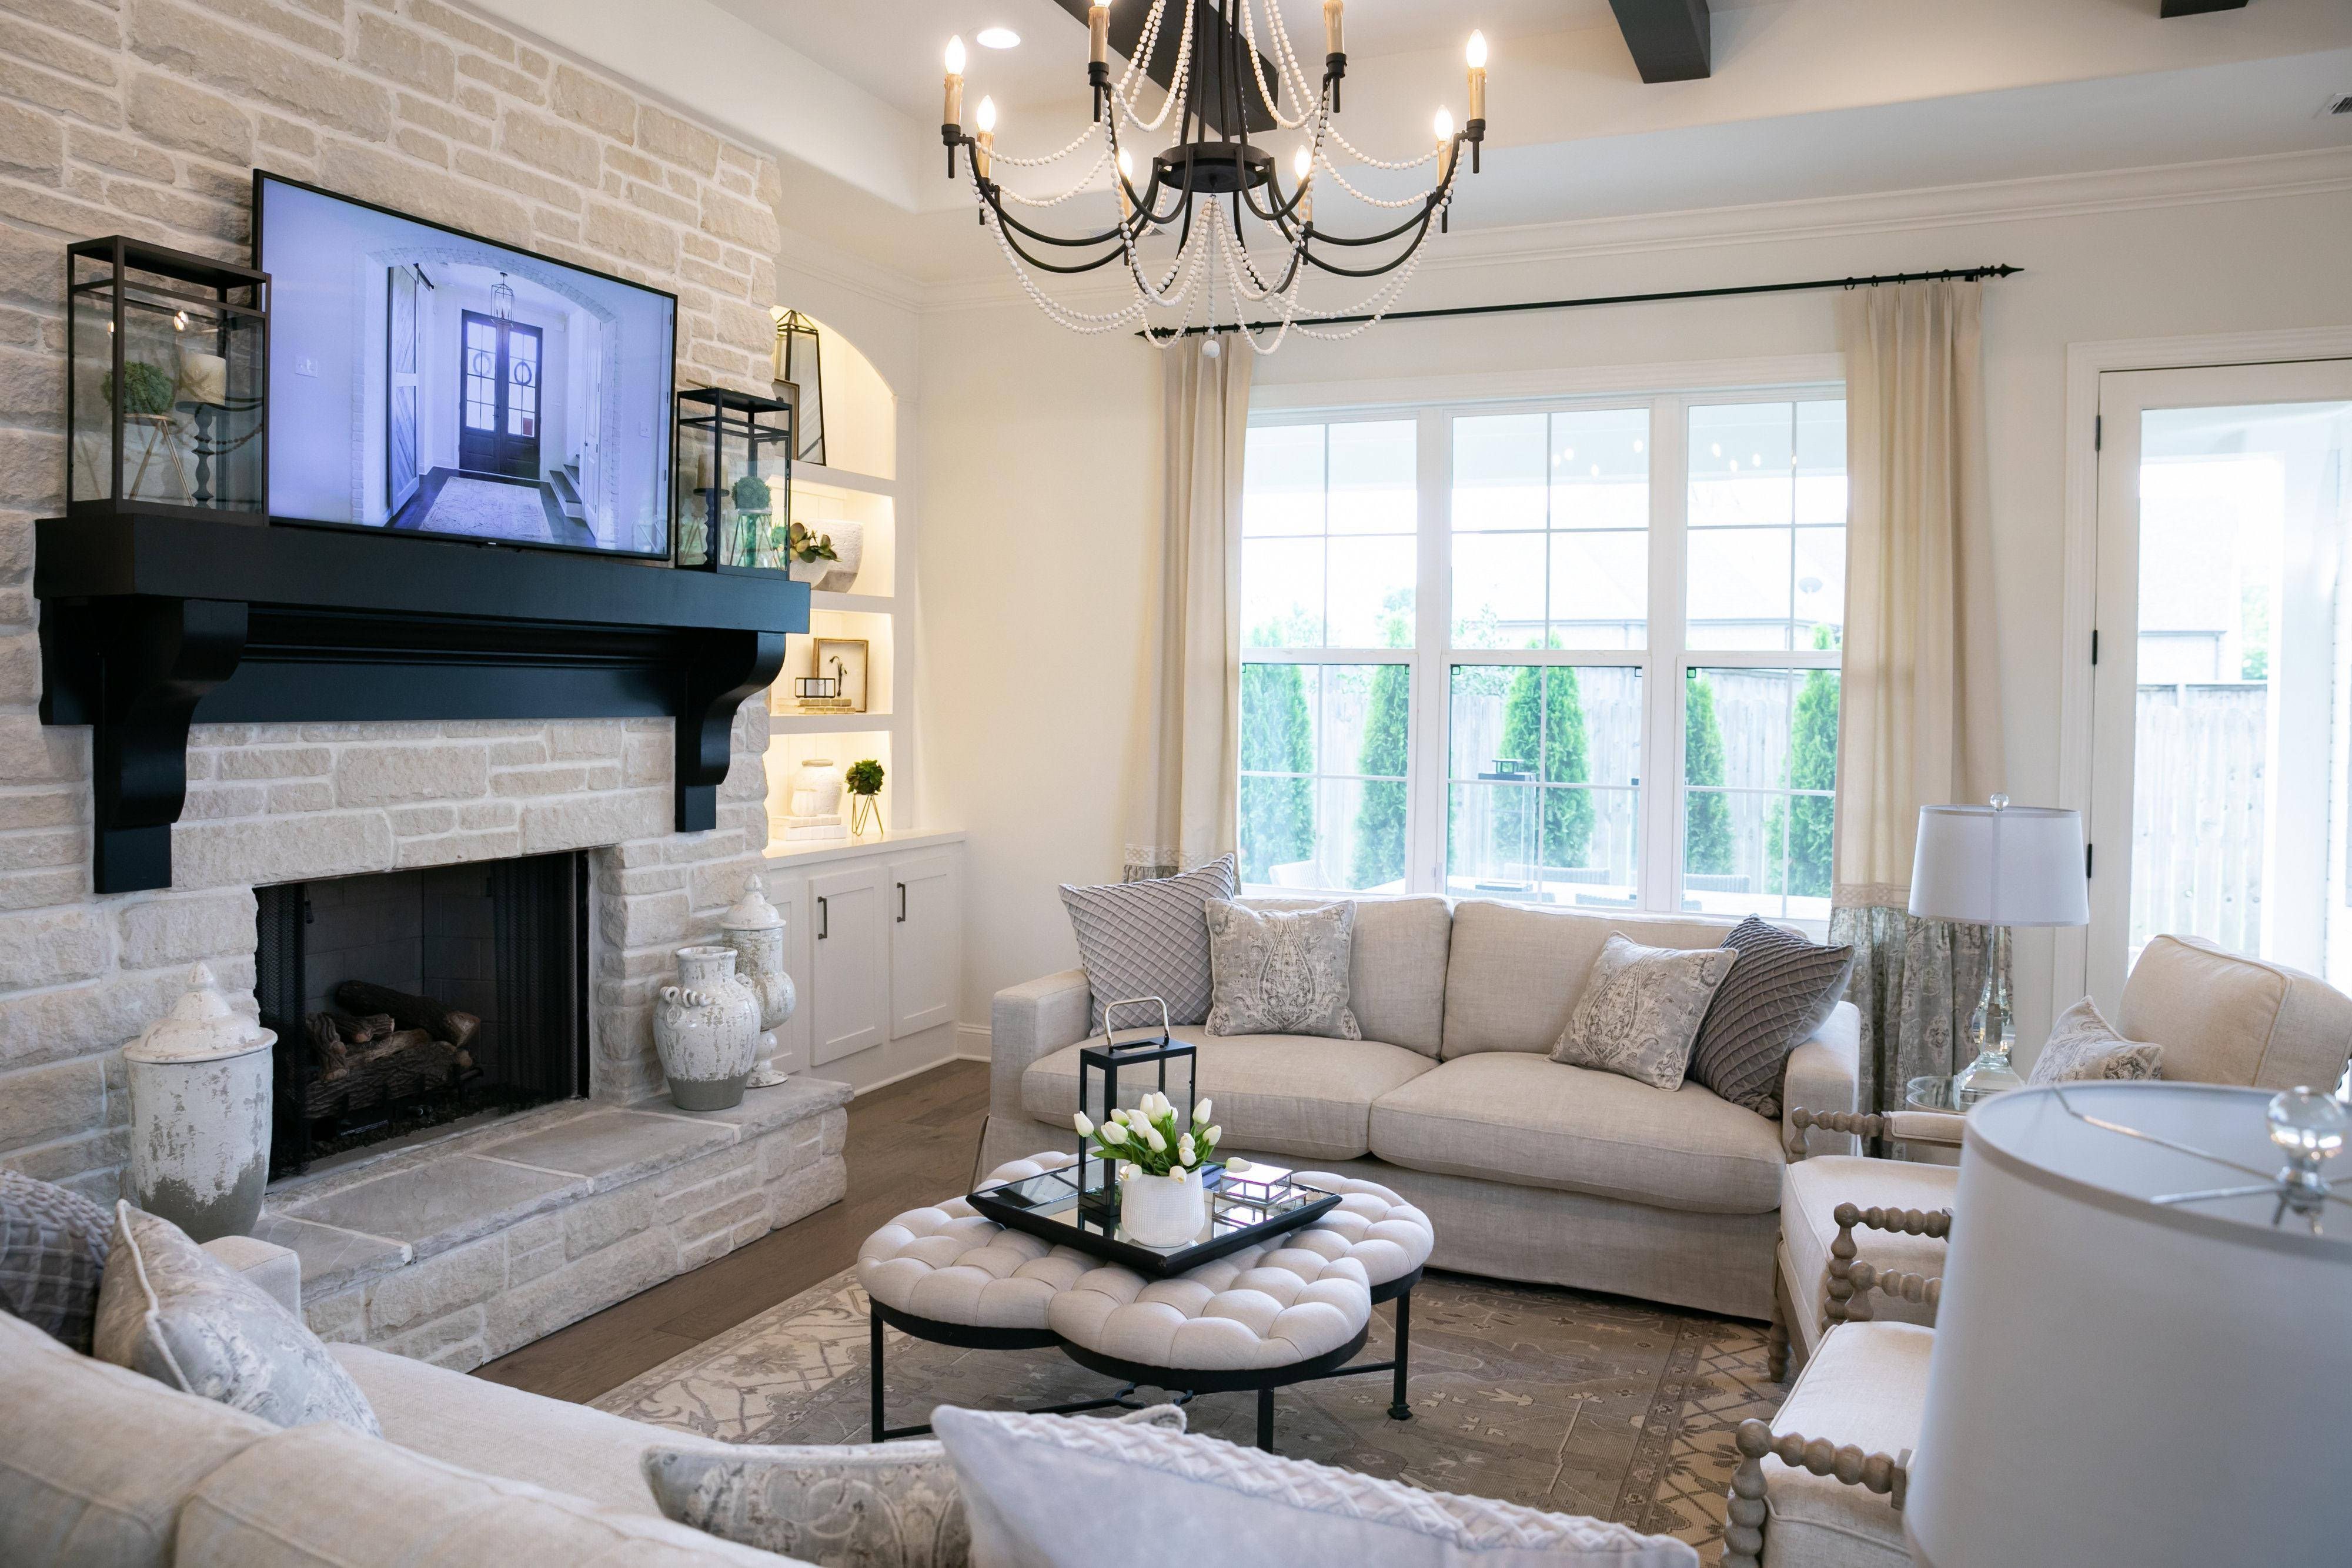 Living Area featured in the Riverside By Regency Homebuilders in Memphis, TN